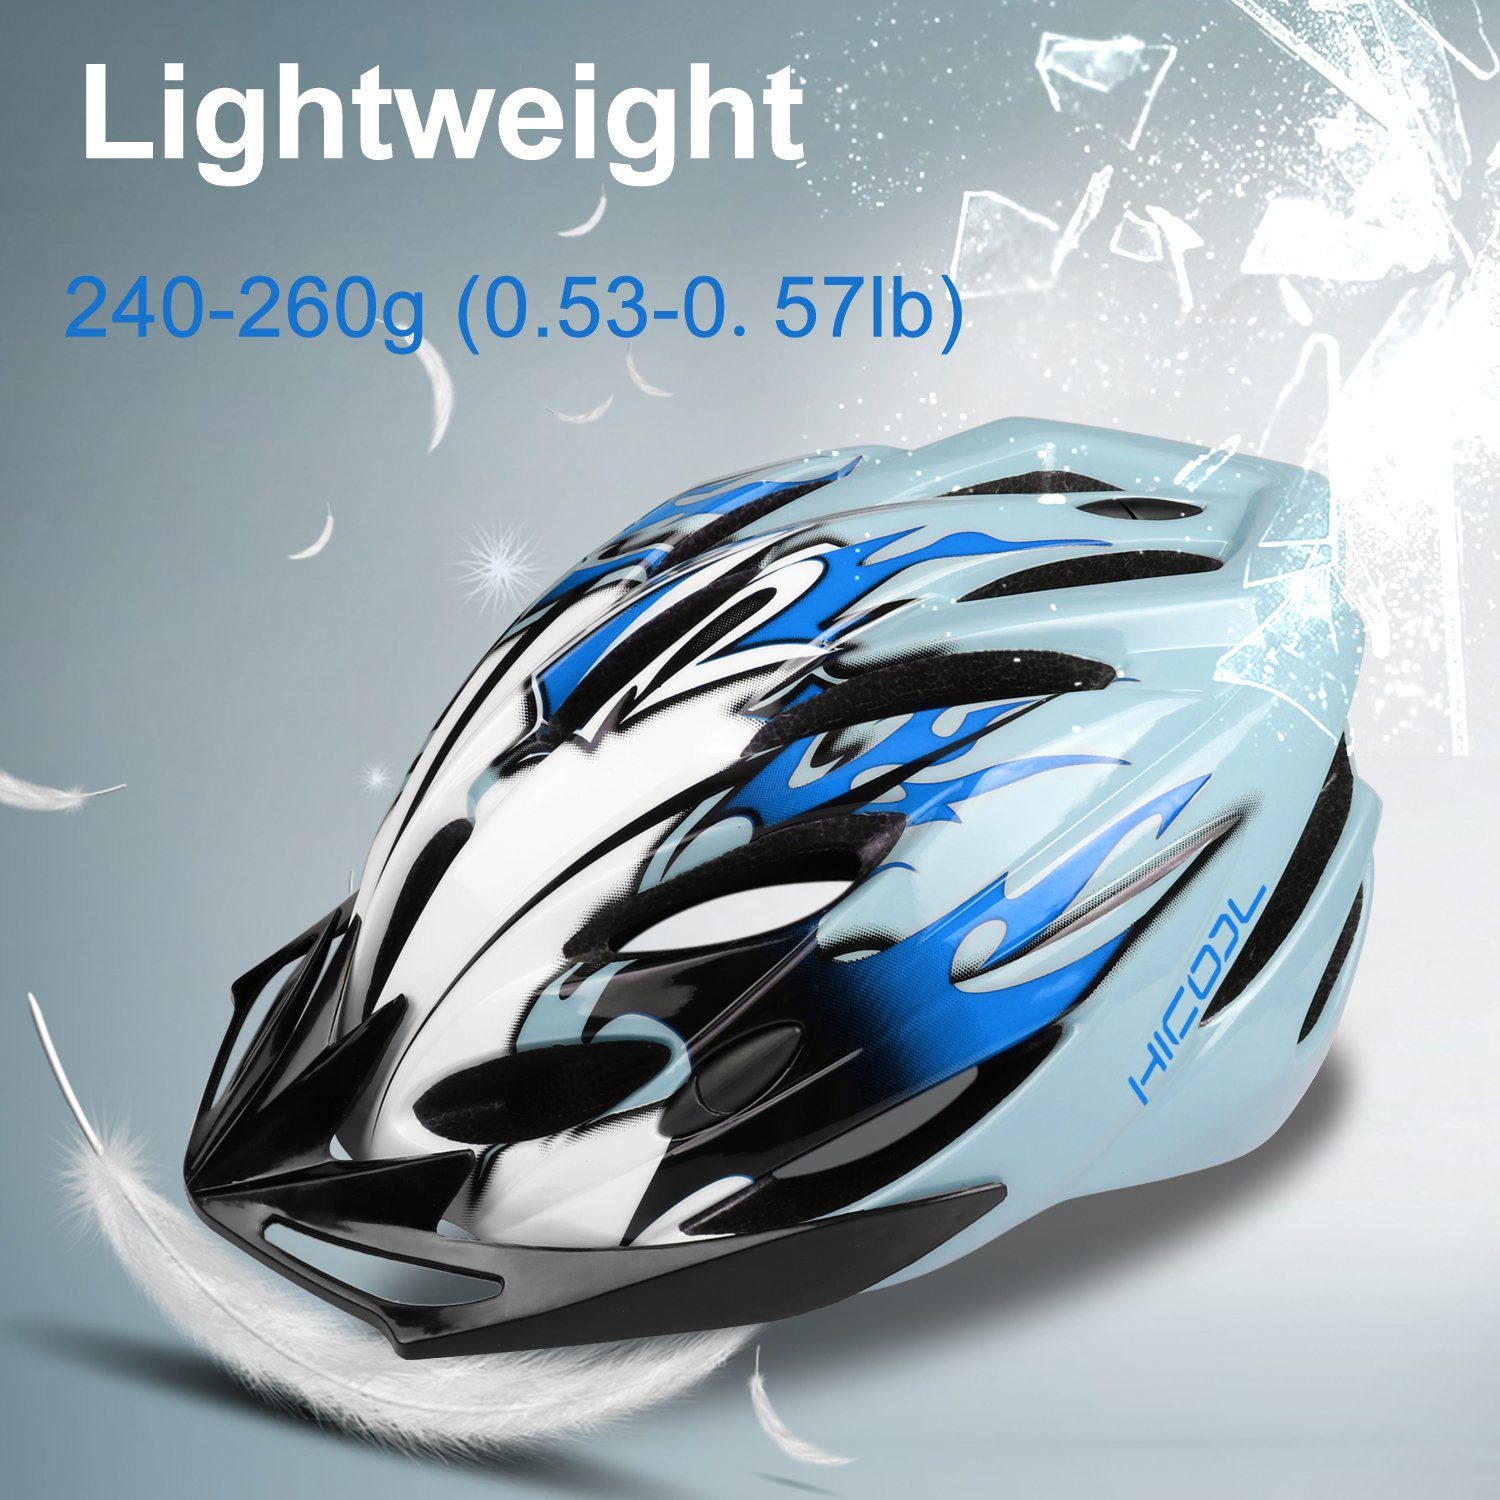 Lightweight Bike Helmet Bicycle Helmet Outdoor Sports Helmet with Removable Visor and Adjustable Design for Men Women Safety Protection HiCool Adult Cycling Helmet